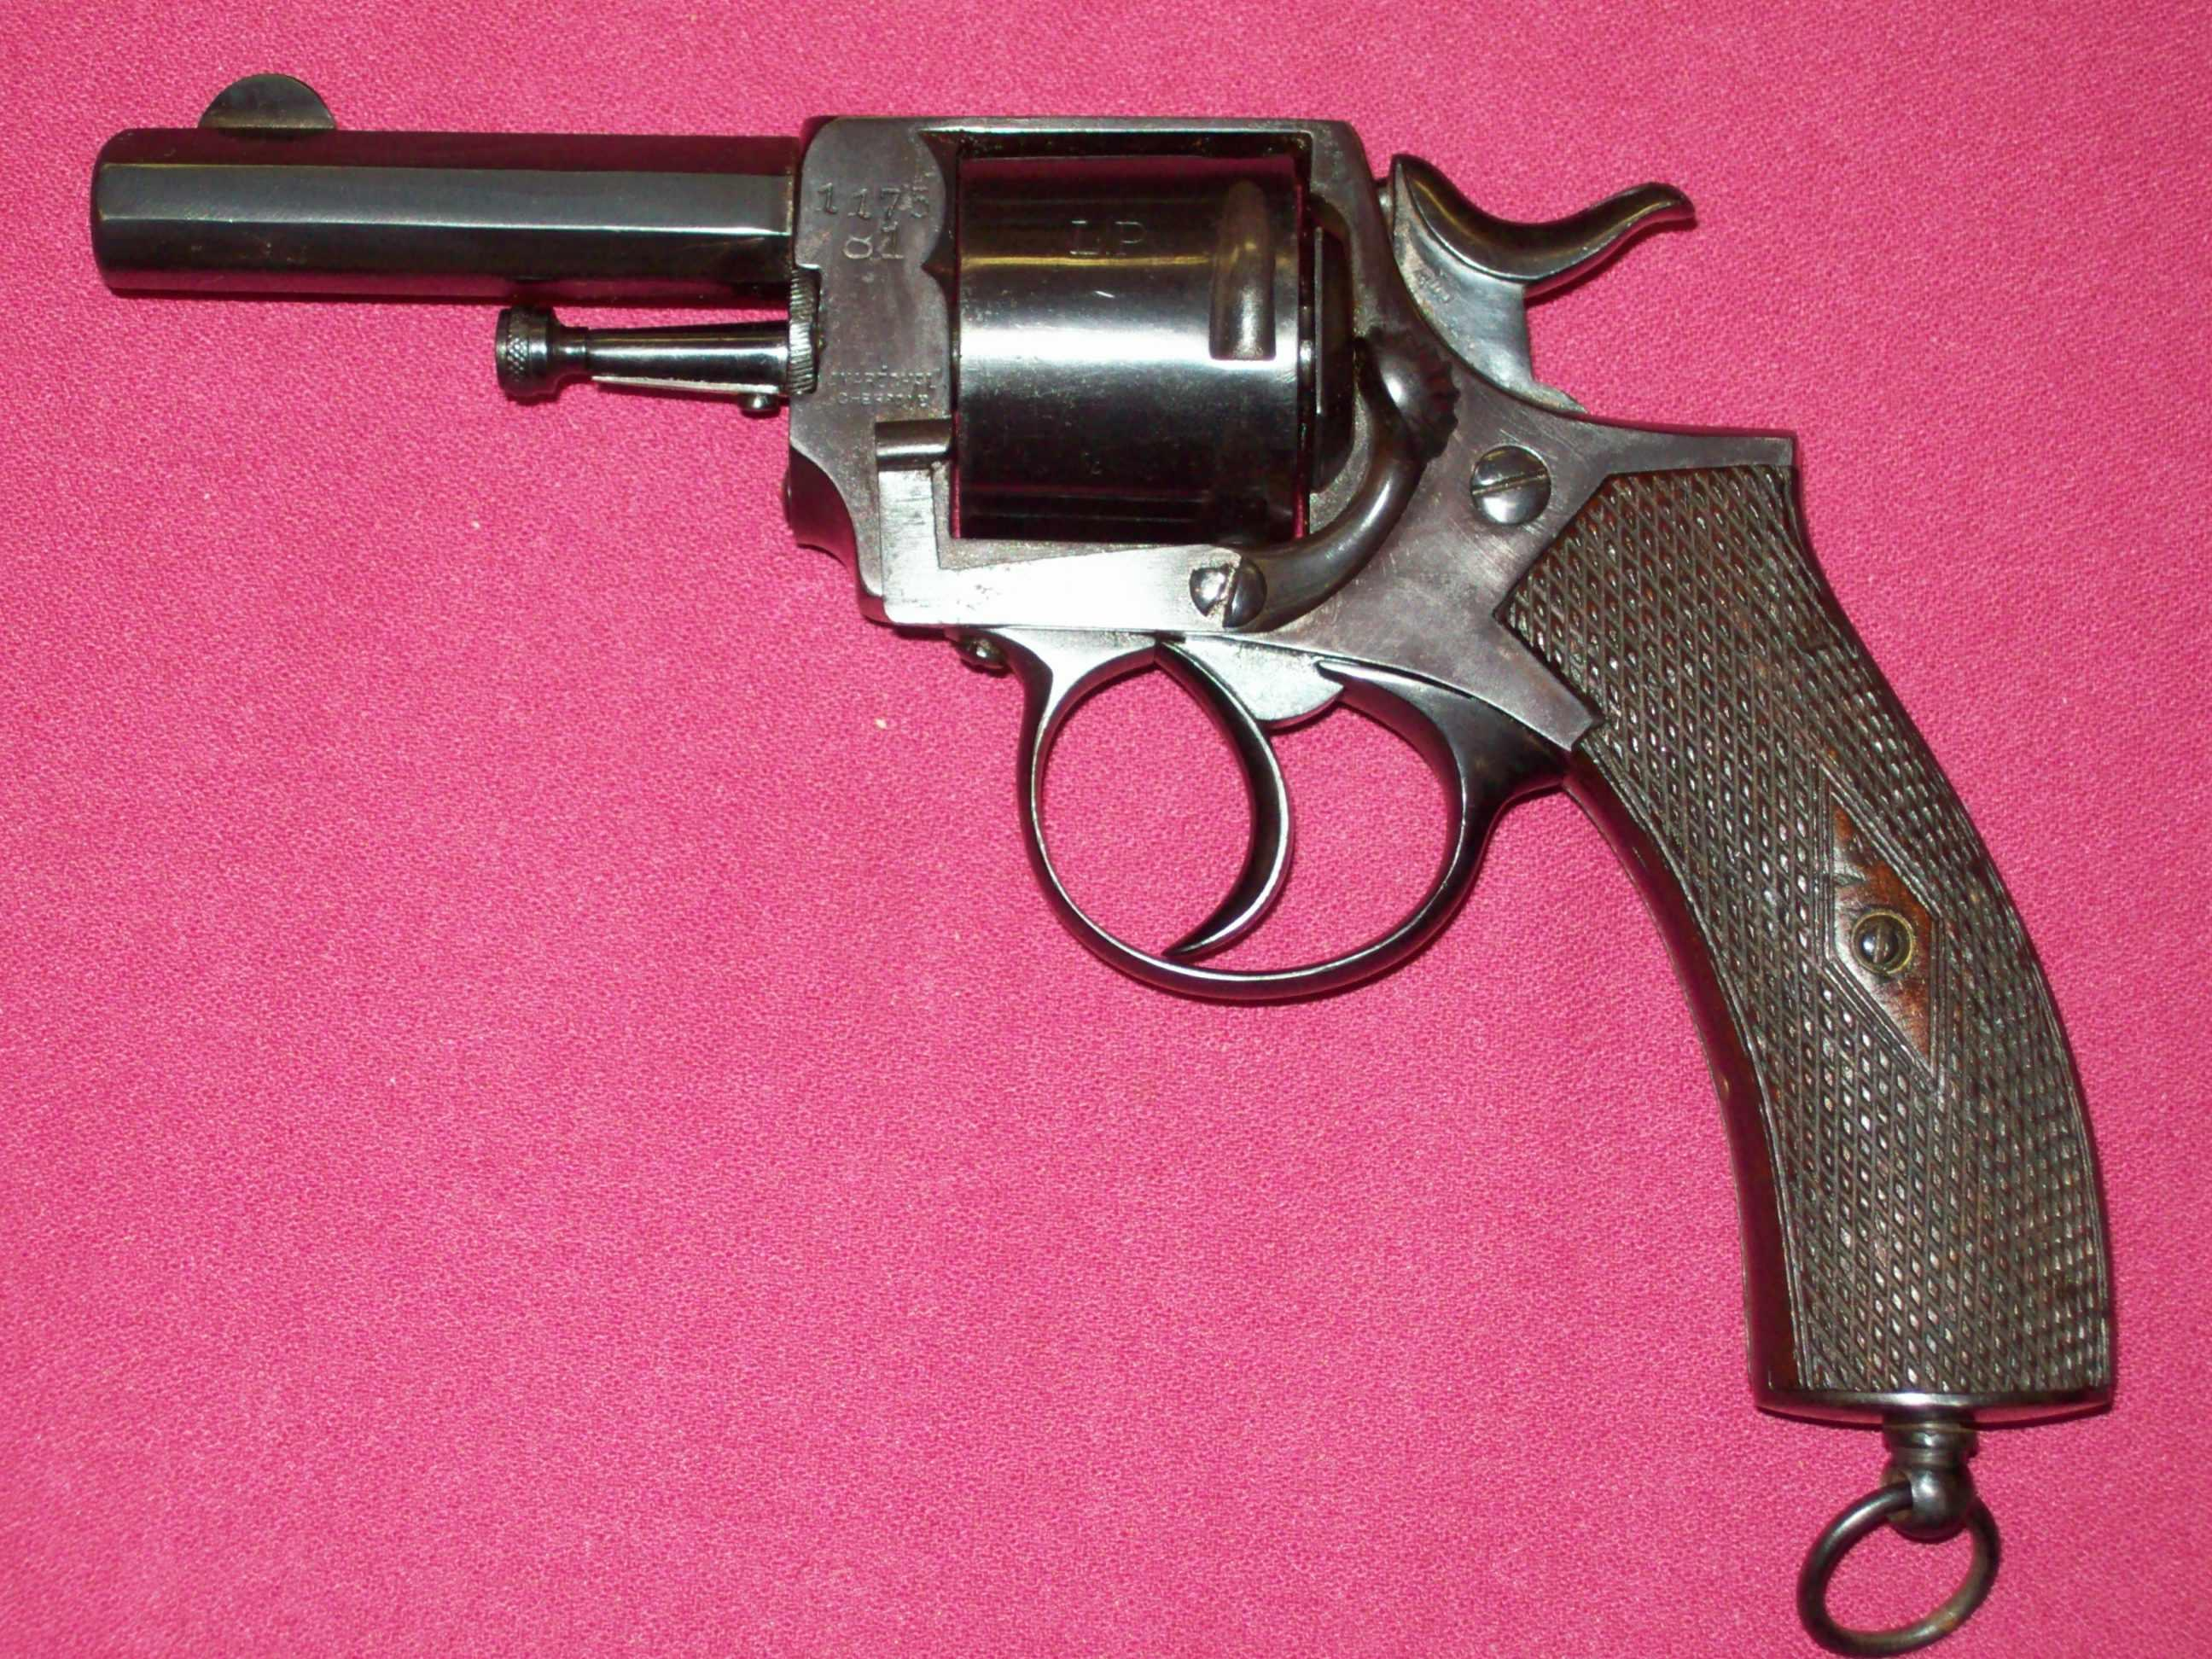 J. Marechal Chercile 9mm antique revolver for sale